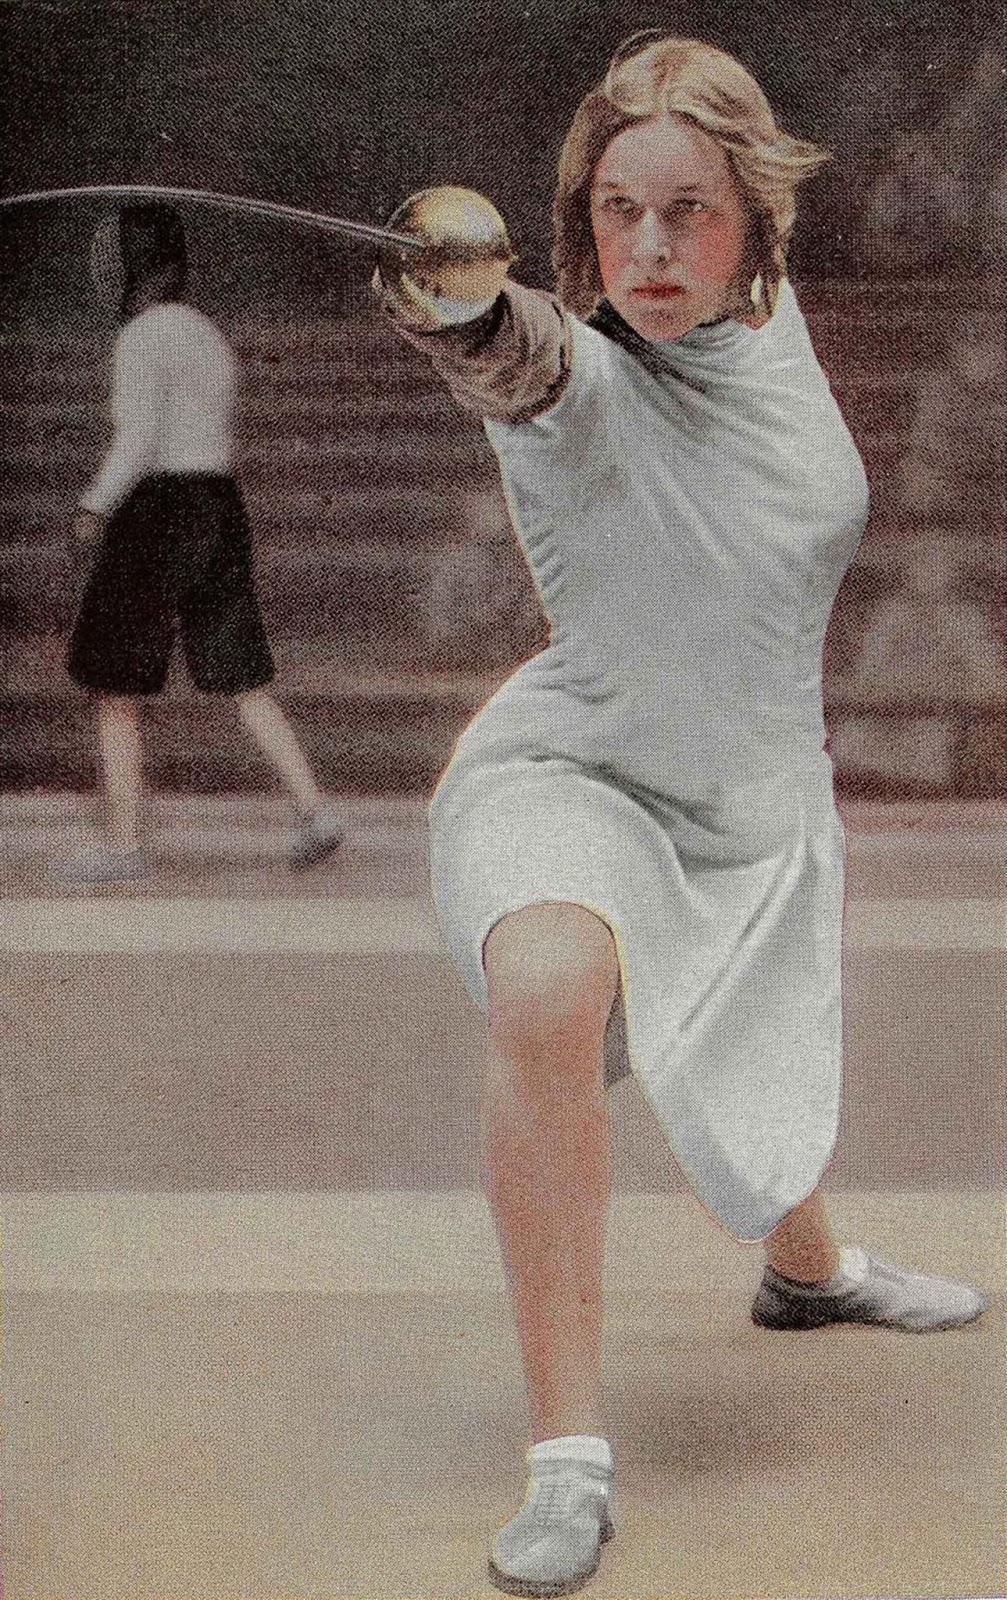 Mayer at the Los Angeles Olympics. 1932.